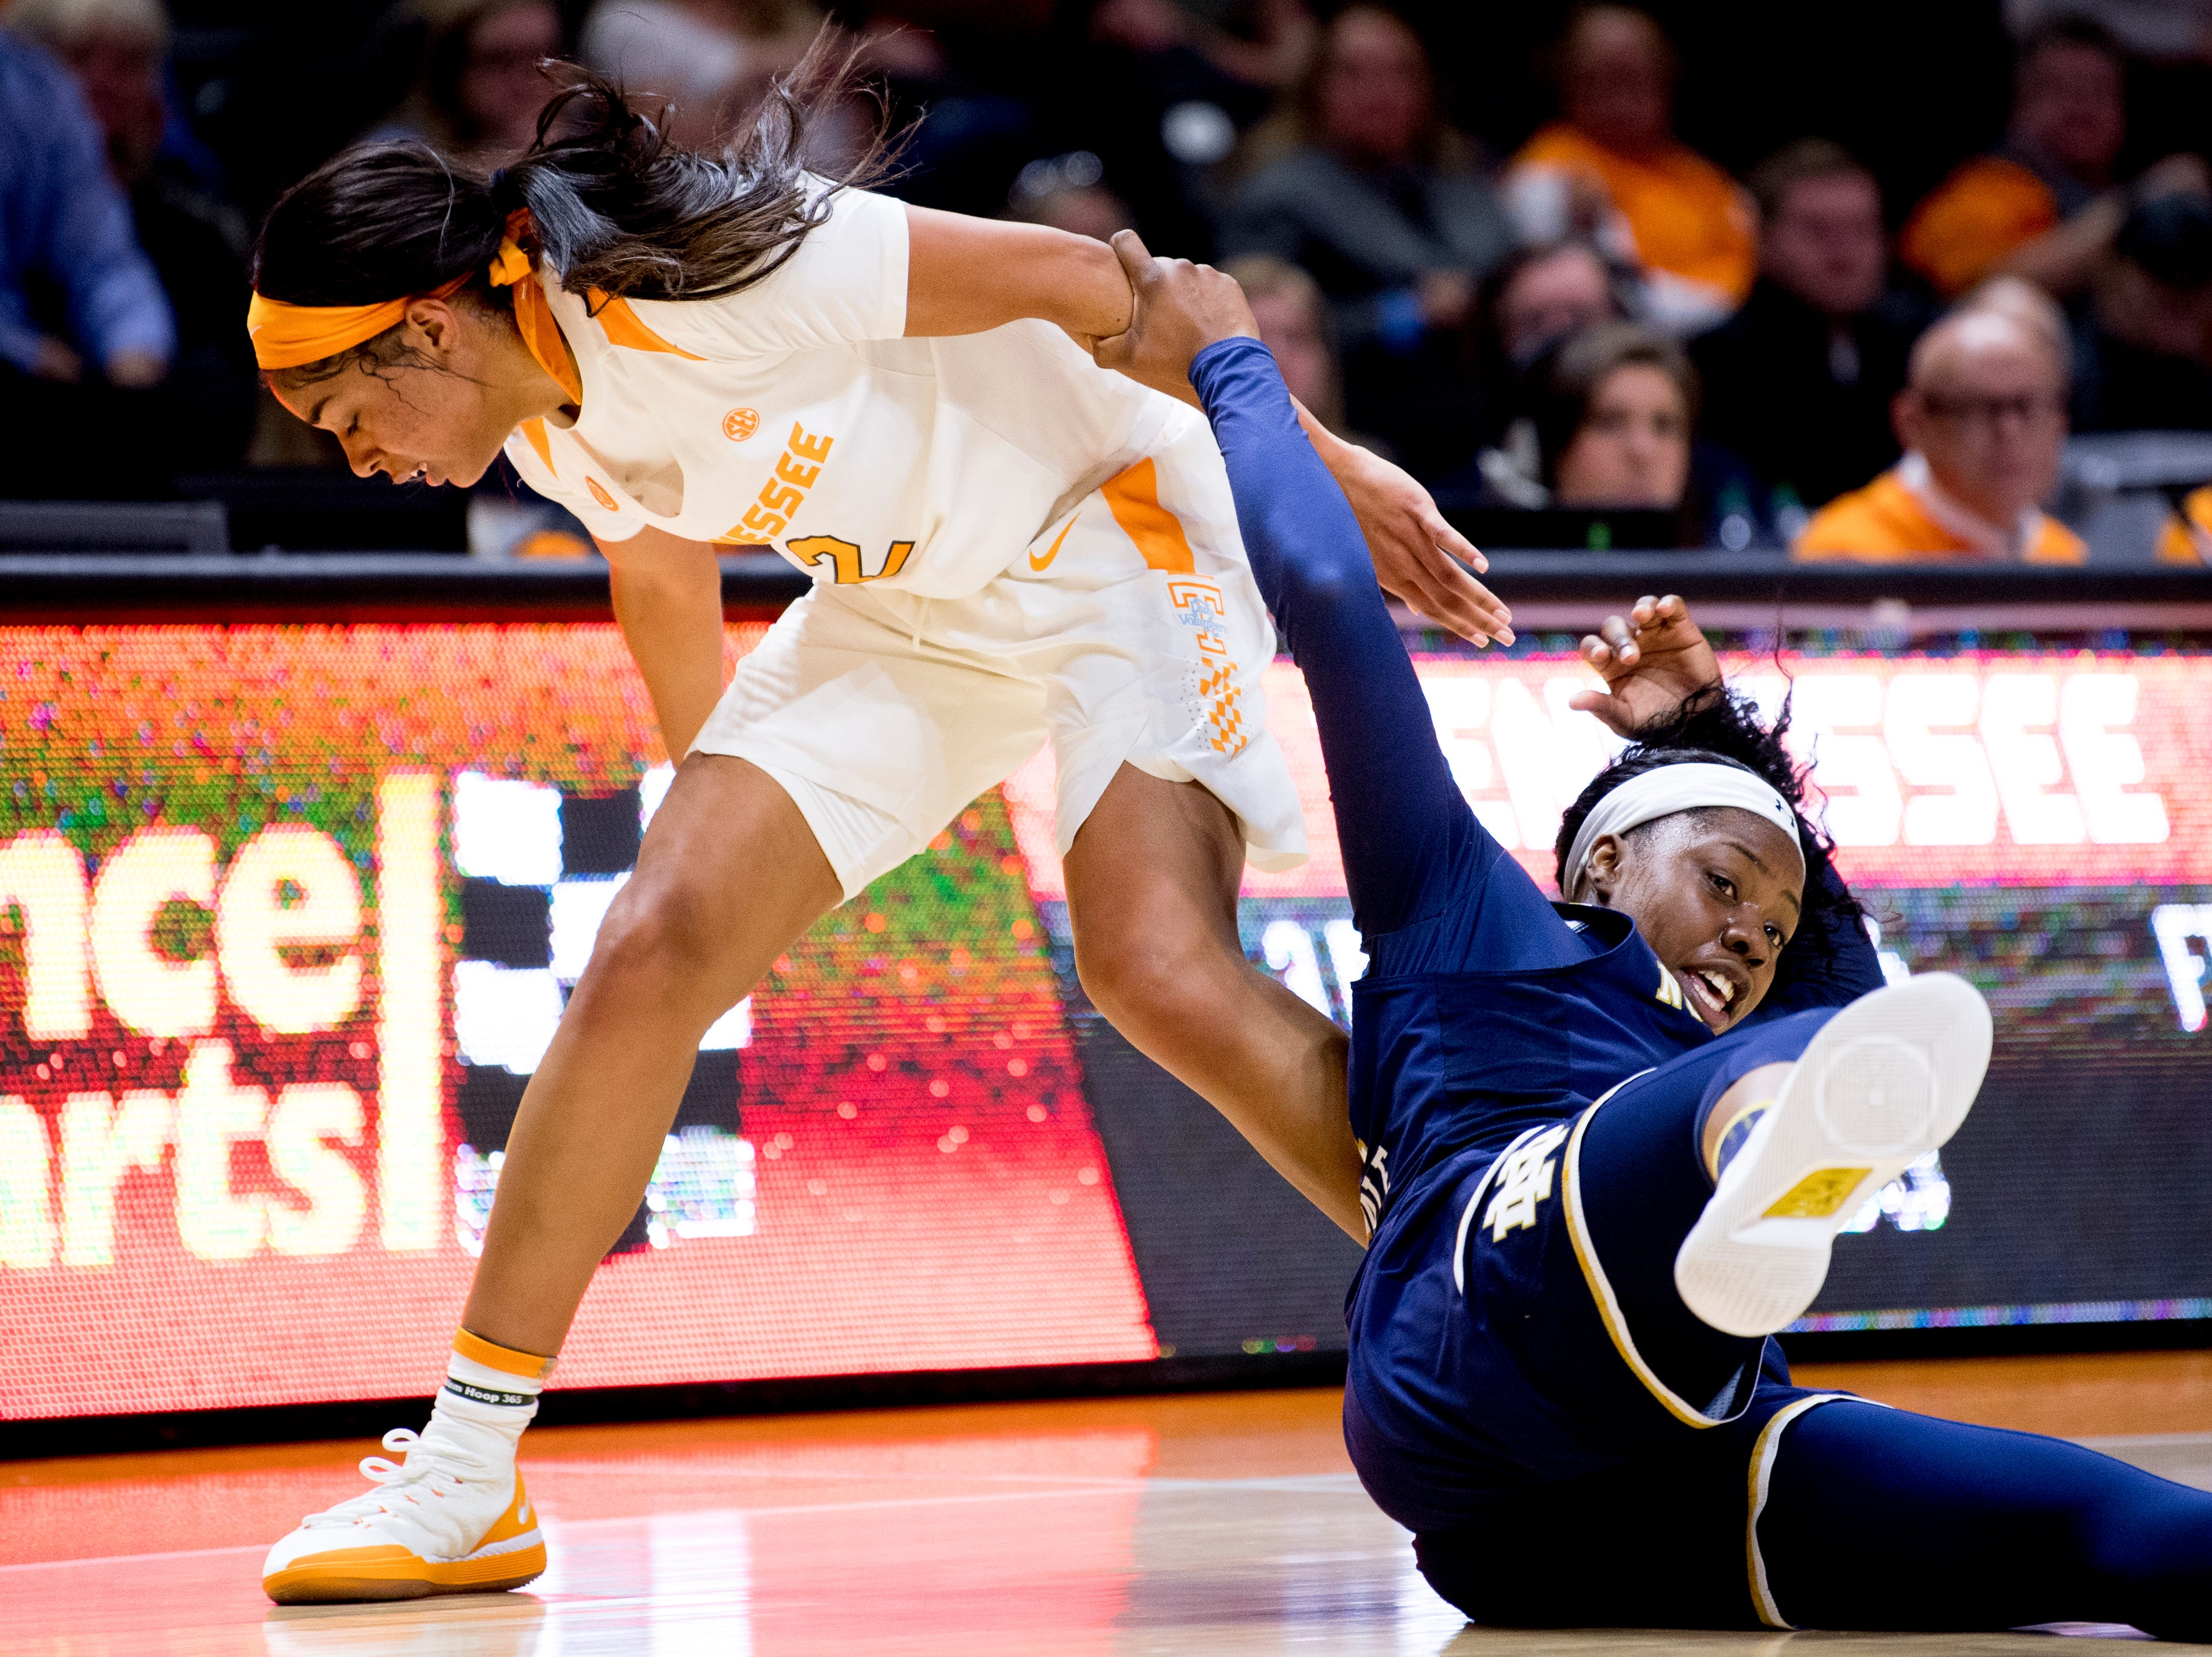 Tennessee guard Evina Westbrook (2) and Notre Dame guard Arike Ogunbowale (24) trip over one another during a game between Tennessee and Notre Dame at Thompson-Boling Arena in Knoxville, Tennessee on Thursday, January 24, 2019.